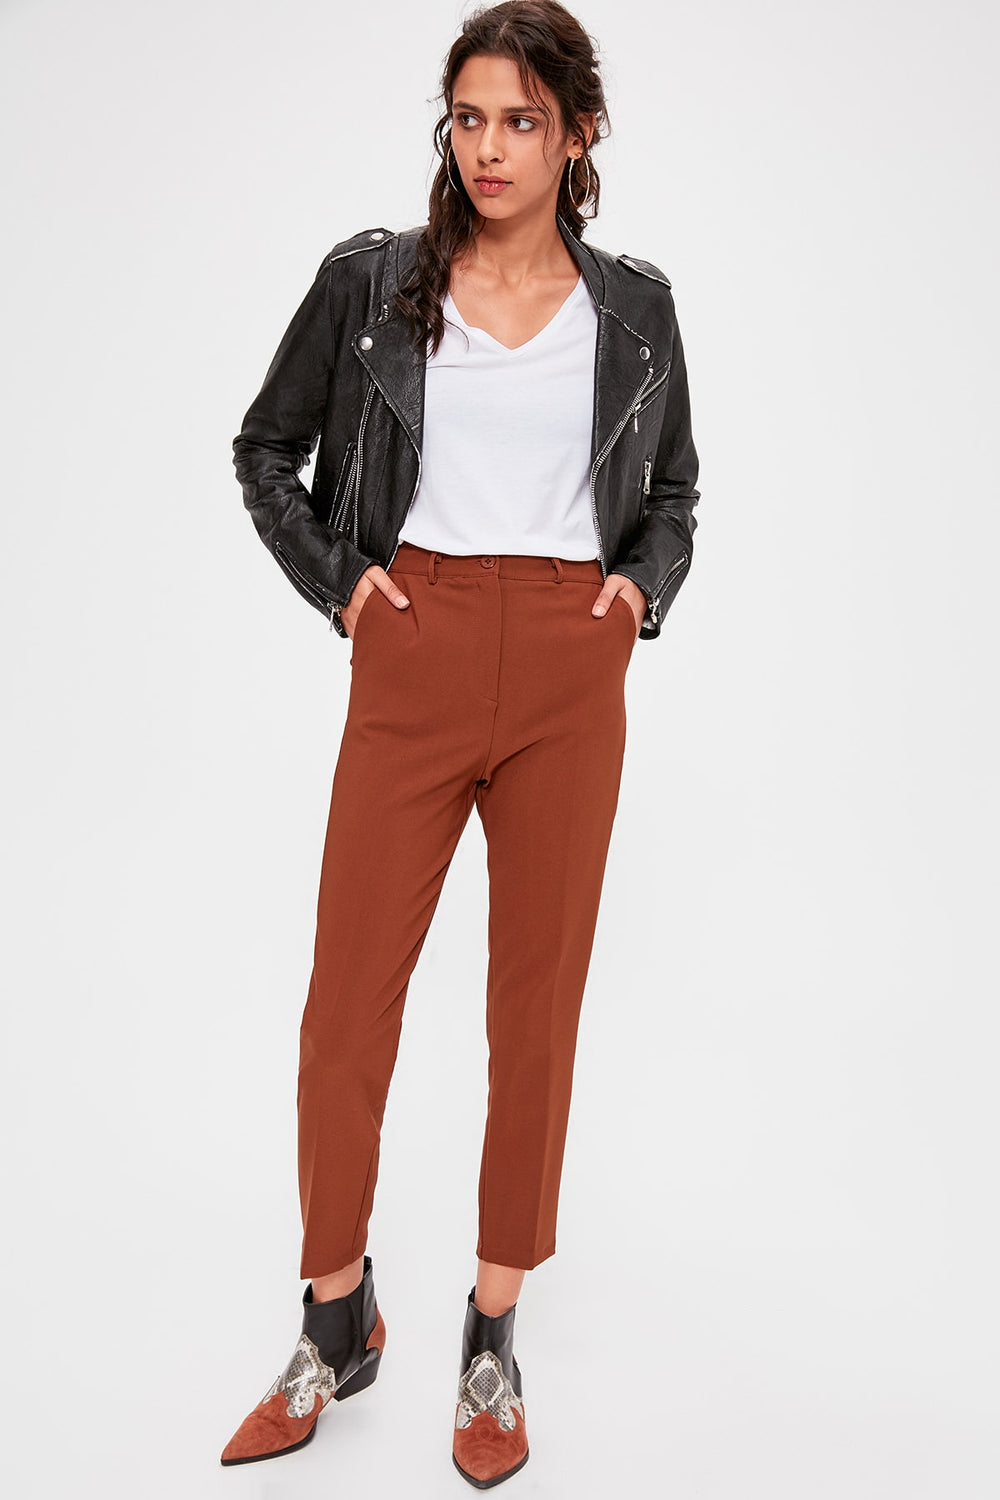 Miss Zut Miss Zut Brown Basic Pants Miss Zut &CO